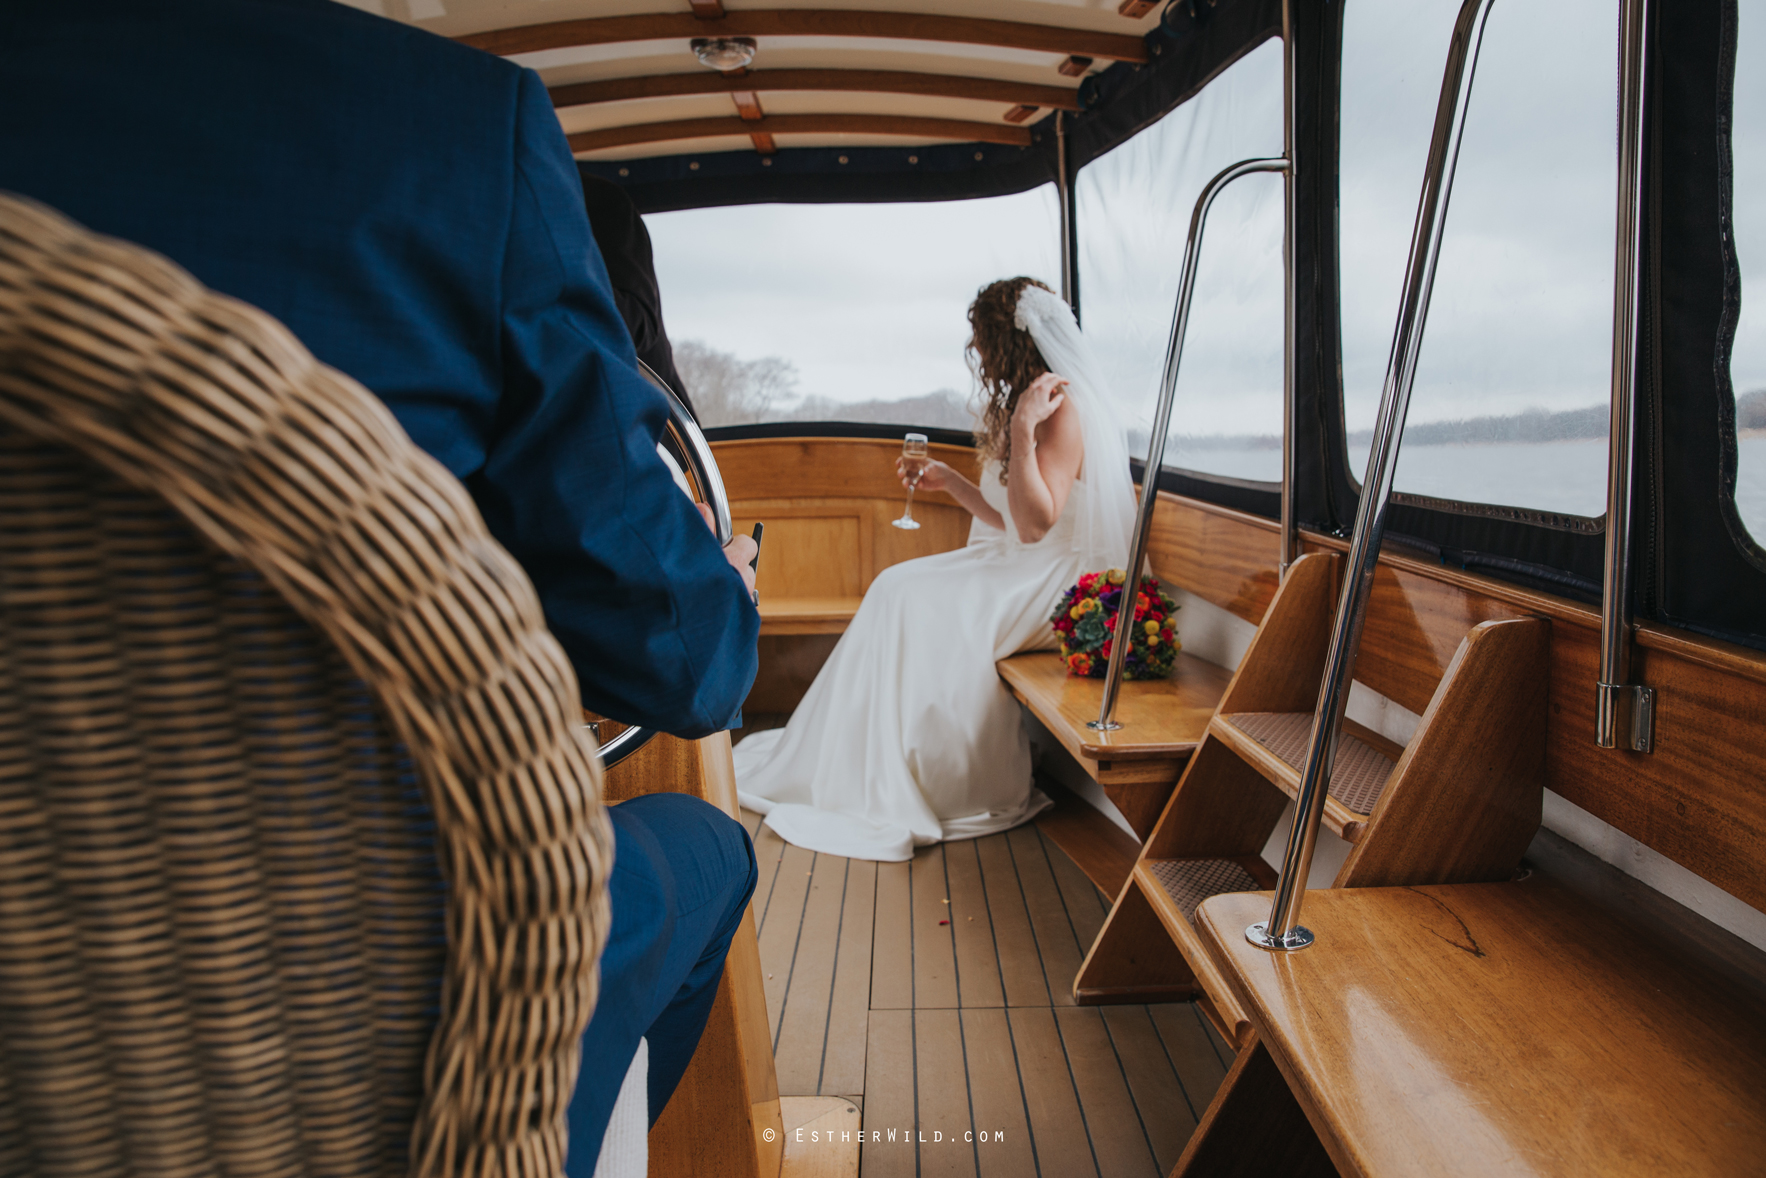 The_BoatHouse_Wedding_Venue_Ormesby_Norfolk_Broads_Boat_Wedding_Photography_Esther_Wild_Photographer_IMG_1450.jpg